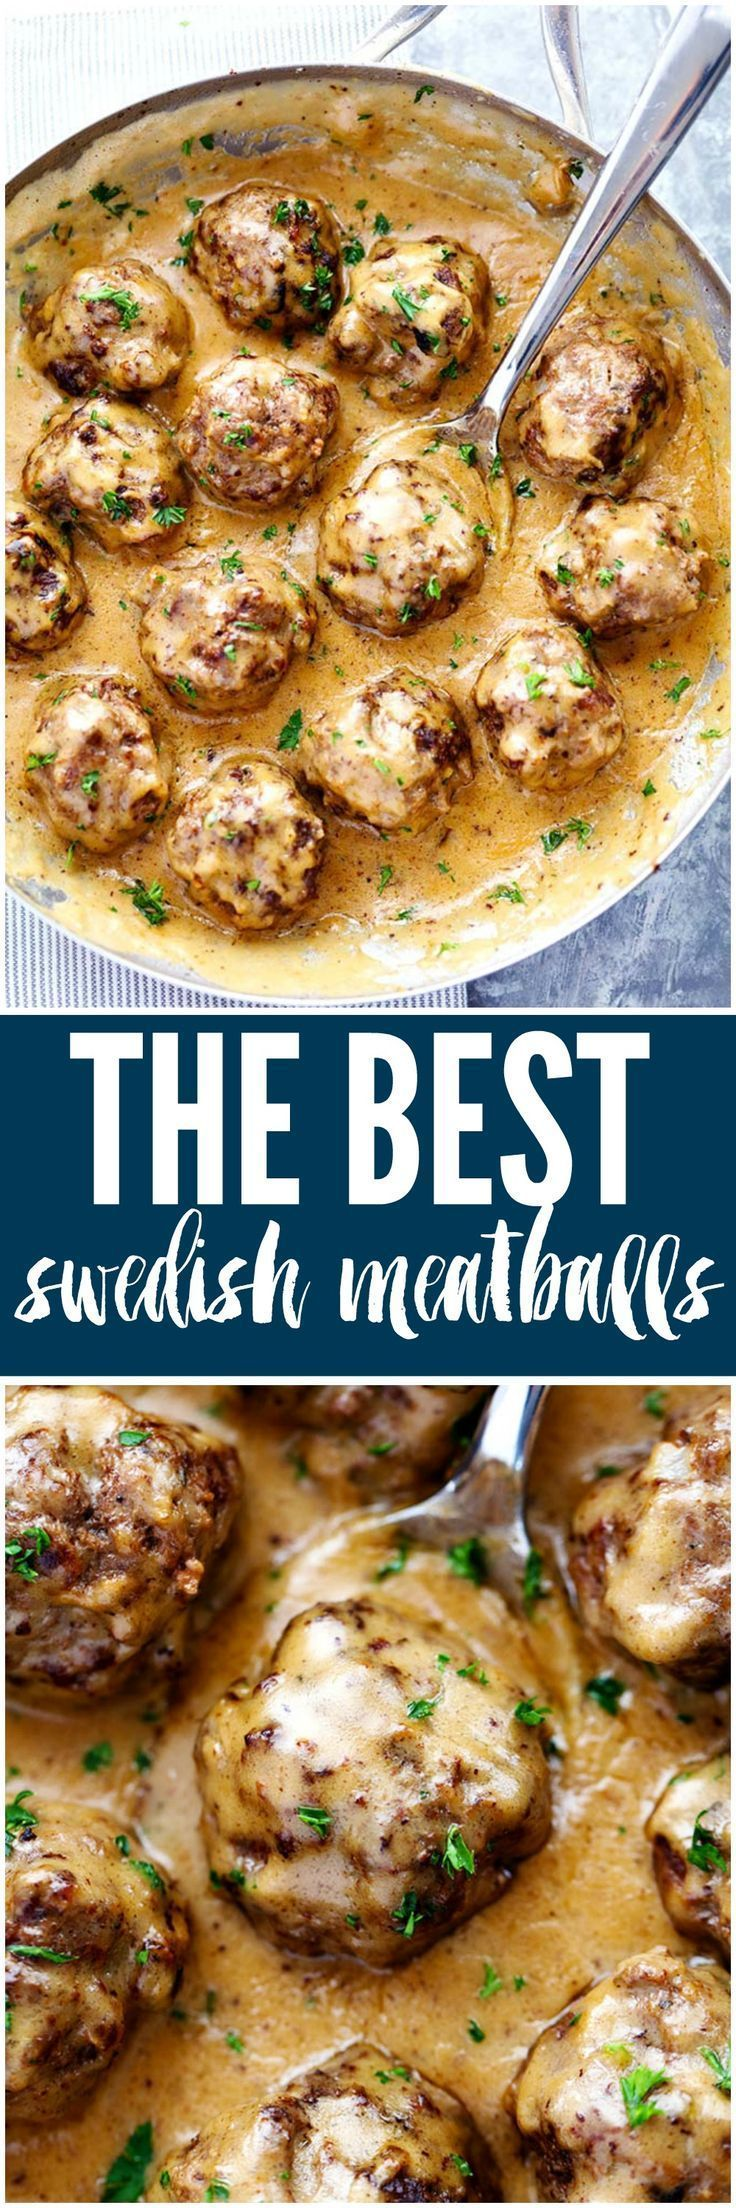 The Best Swedish Meatballs are smothered in the most amazing rich and creamy gravy. The ...